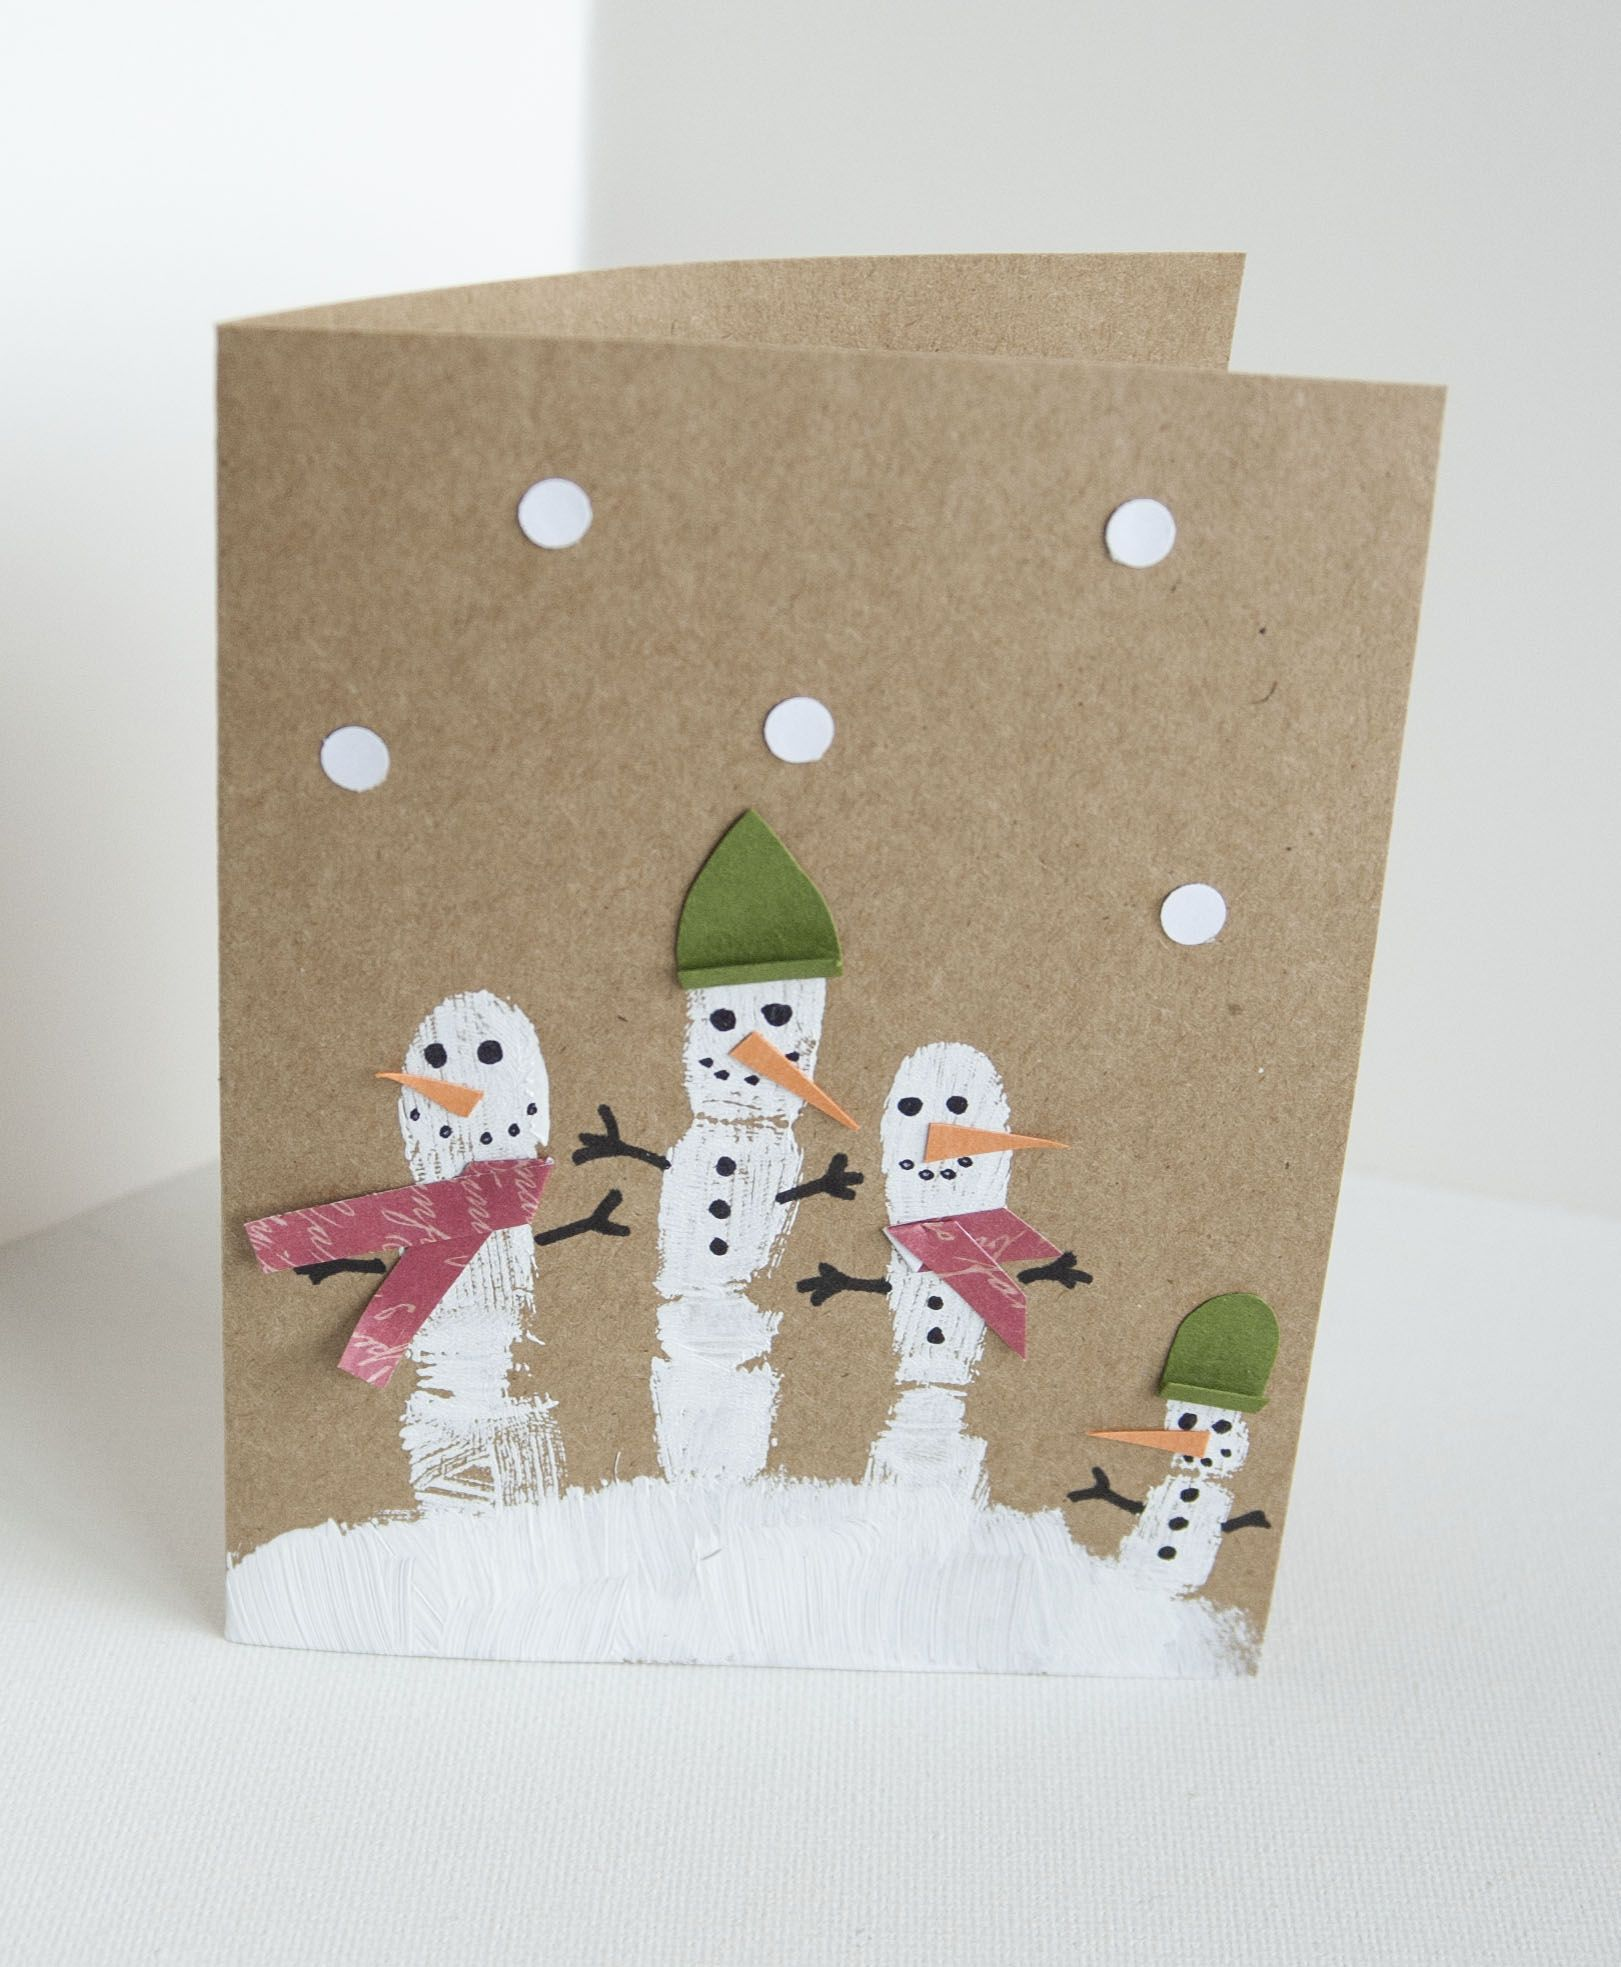 15 Awesome Christmas Cards to Make With Kids | Christmas | Pinterest ...